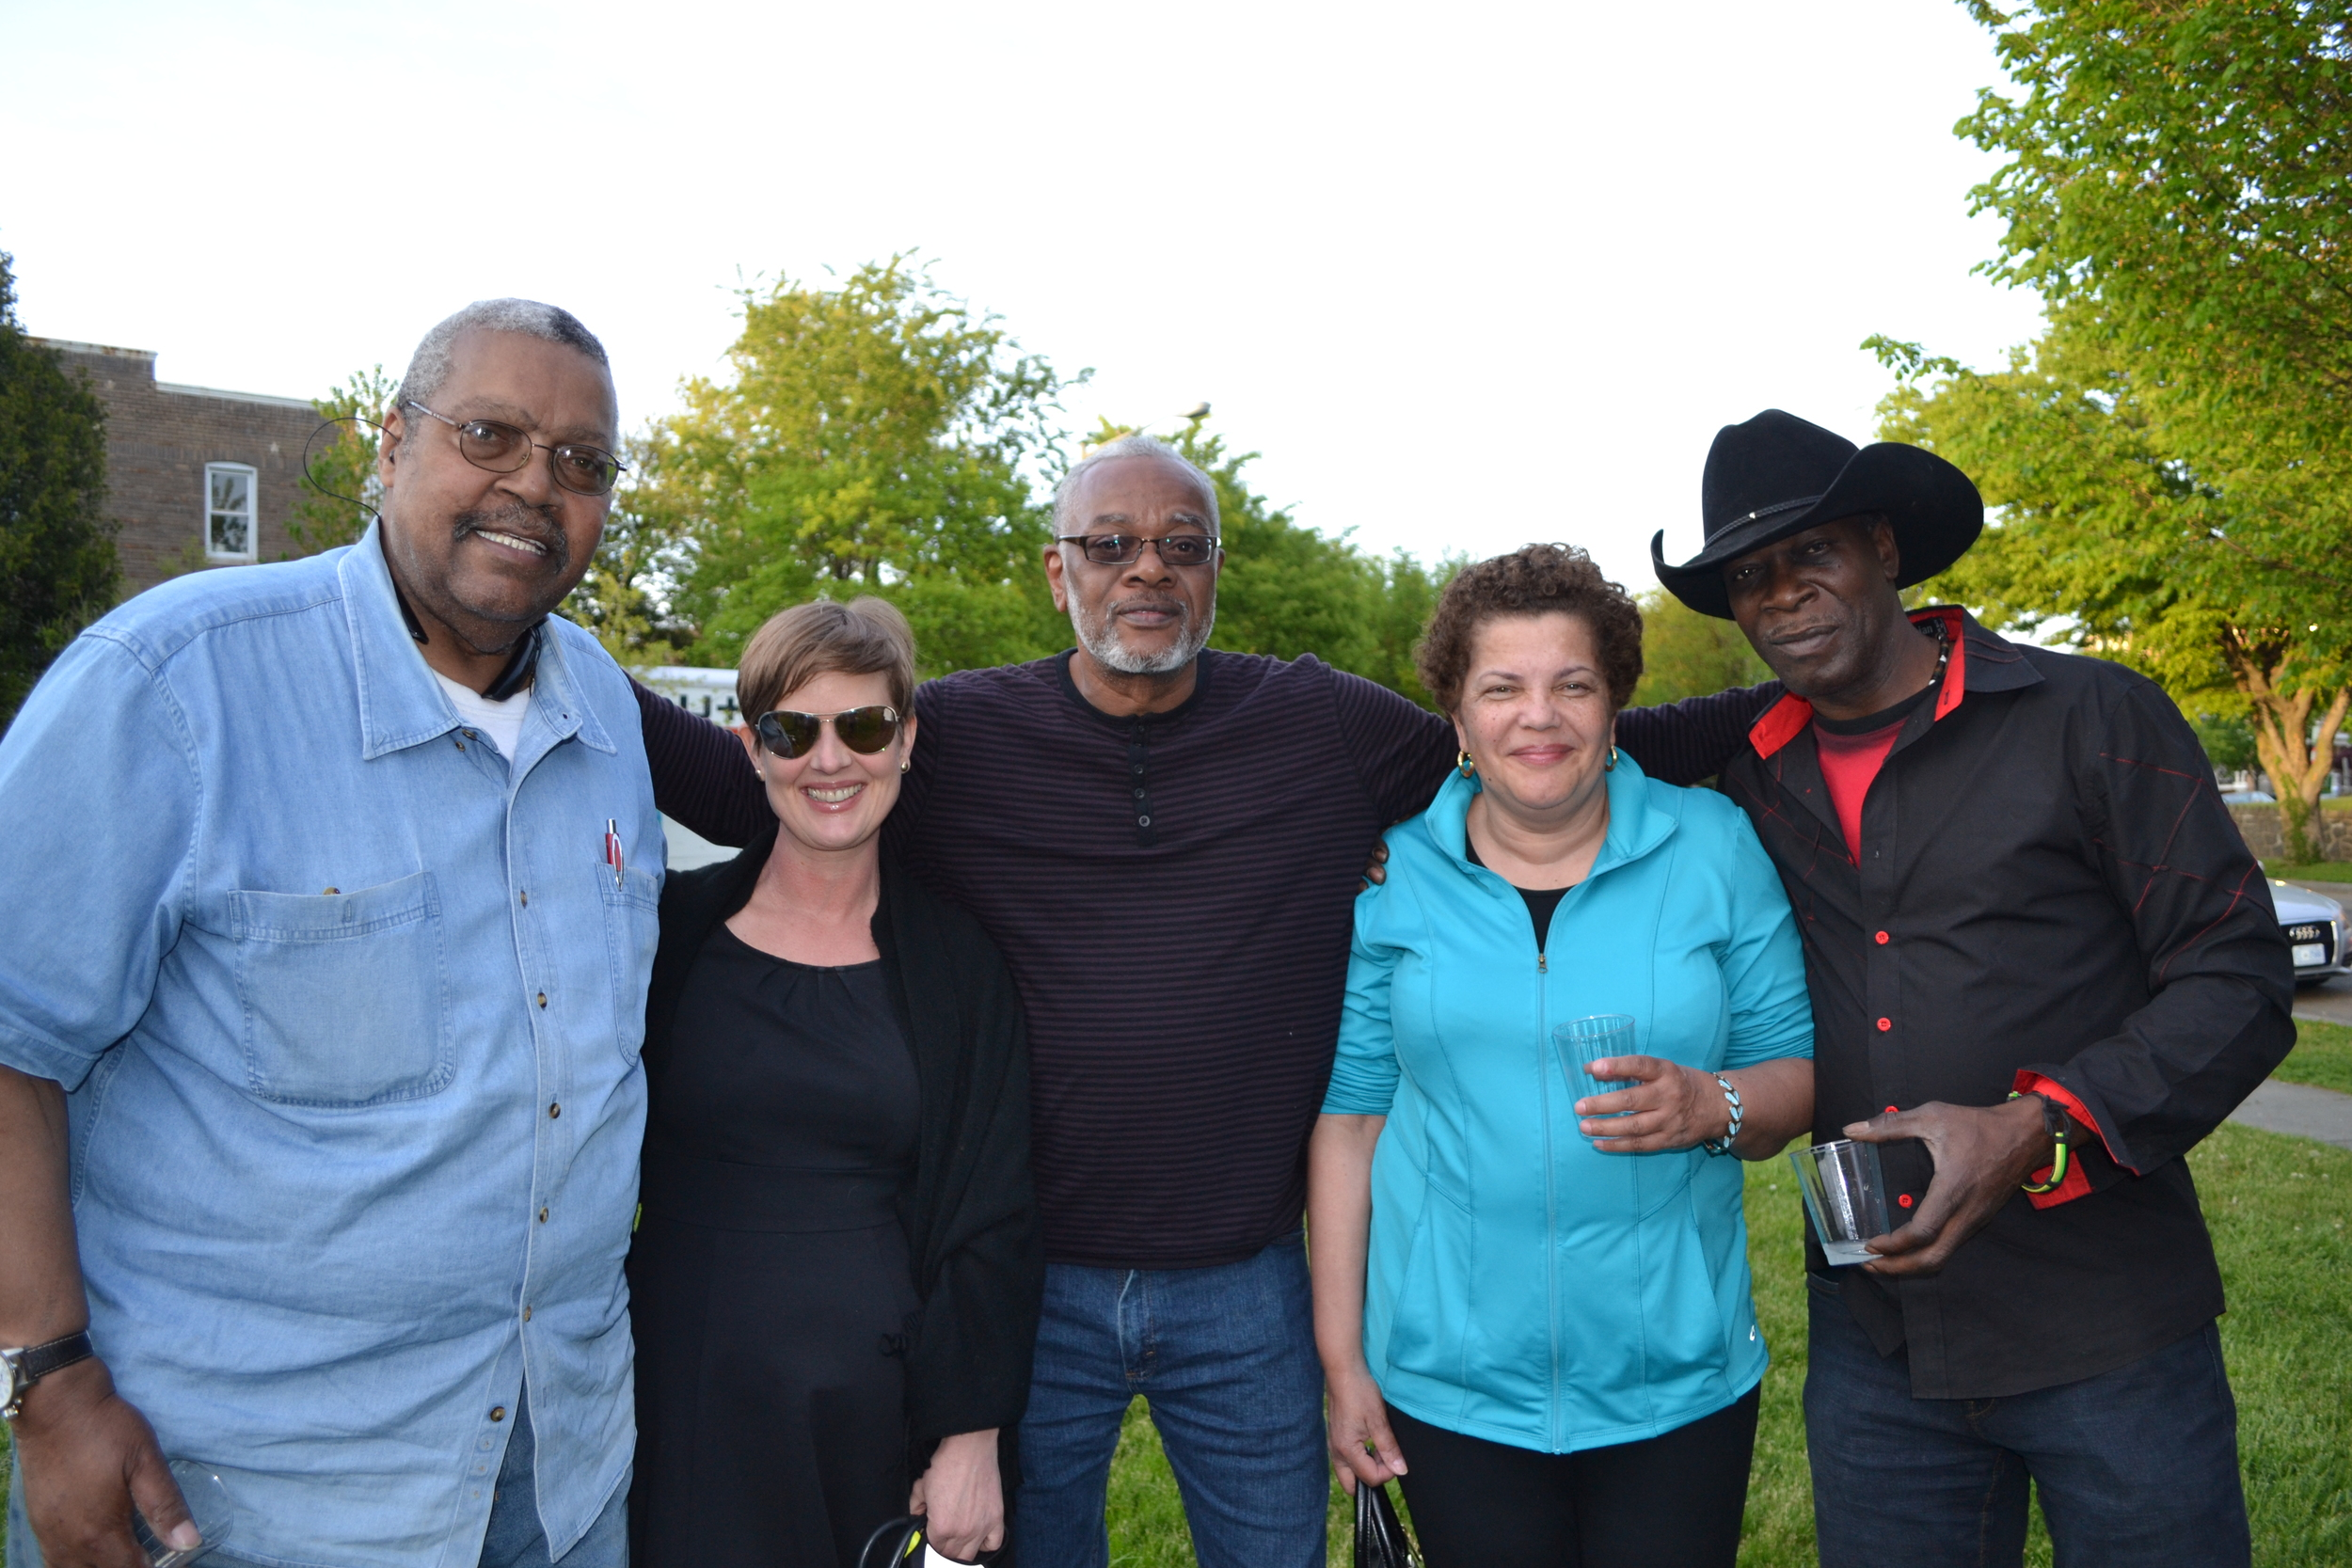 """Woodie Head, Kirsten Spainhower, Lee Magruder, Karen Shaw and Ron Ceasar. """"We're here because we heard about it from our neighbor, and we wanted to meet our neighbors."""""""